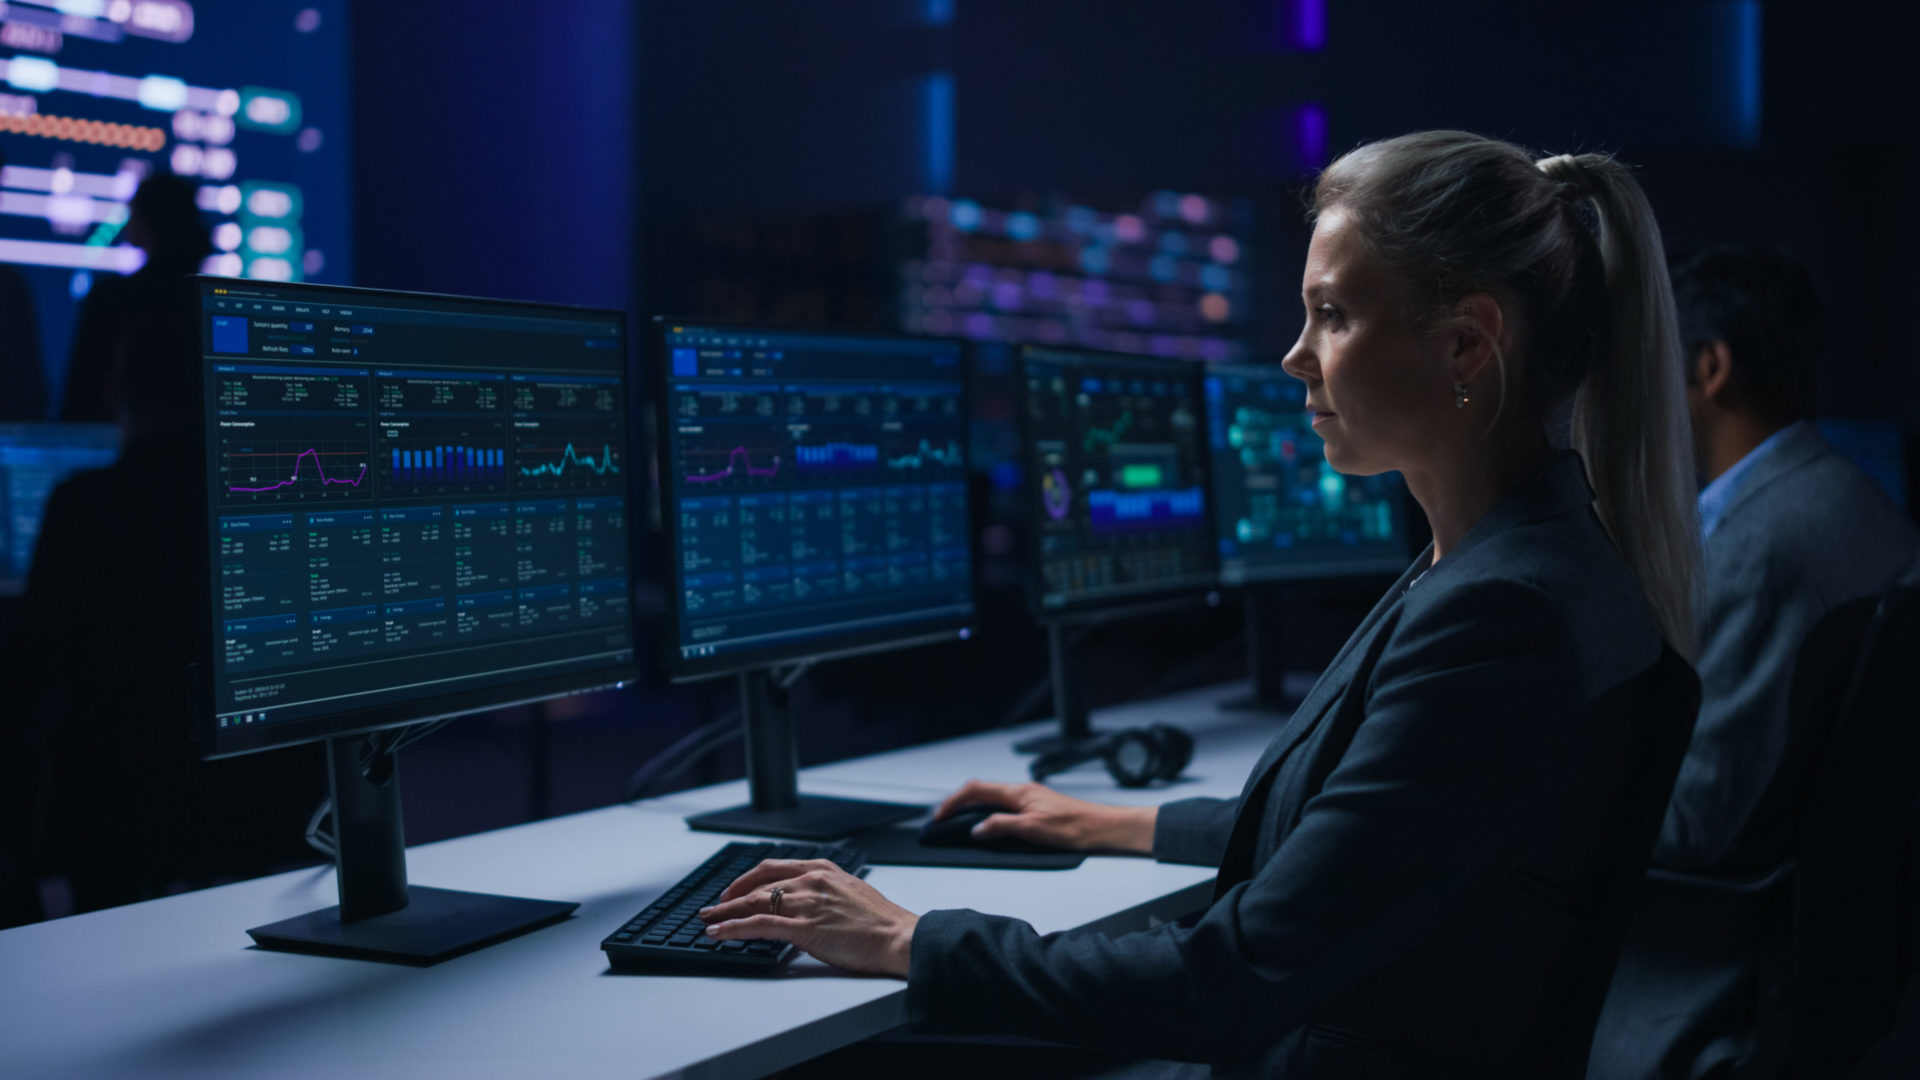 Confident Female Data Scientist Works on Personal Computer in Big Infrastructure Control Room. Team of Stock Market Specialist Use Computers Showing Global Map, Graphs, Charts, Information